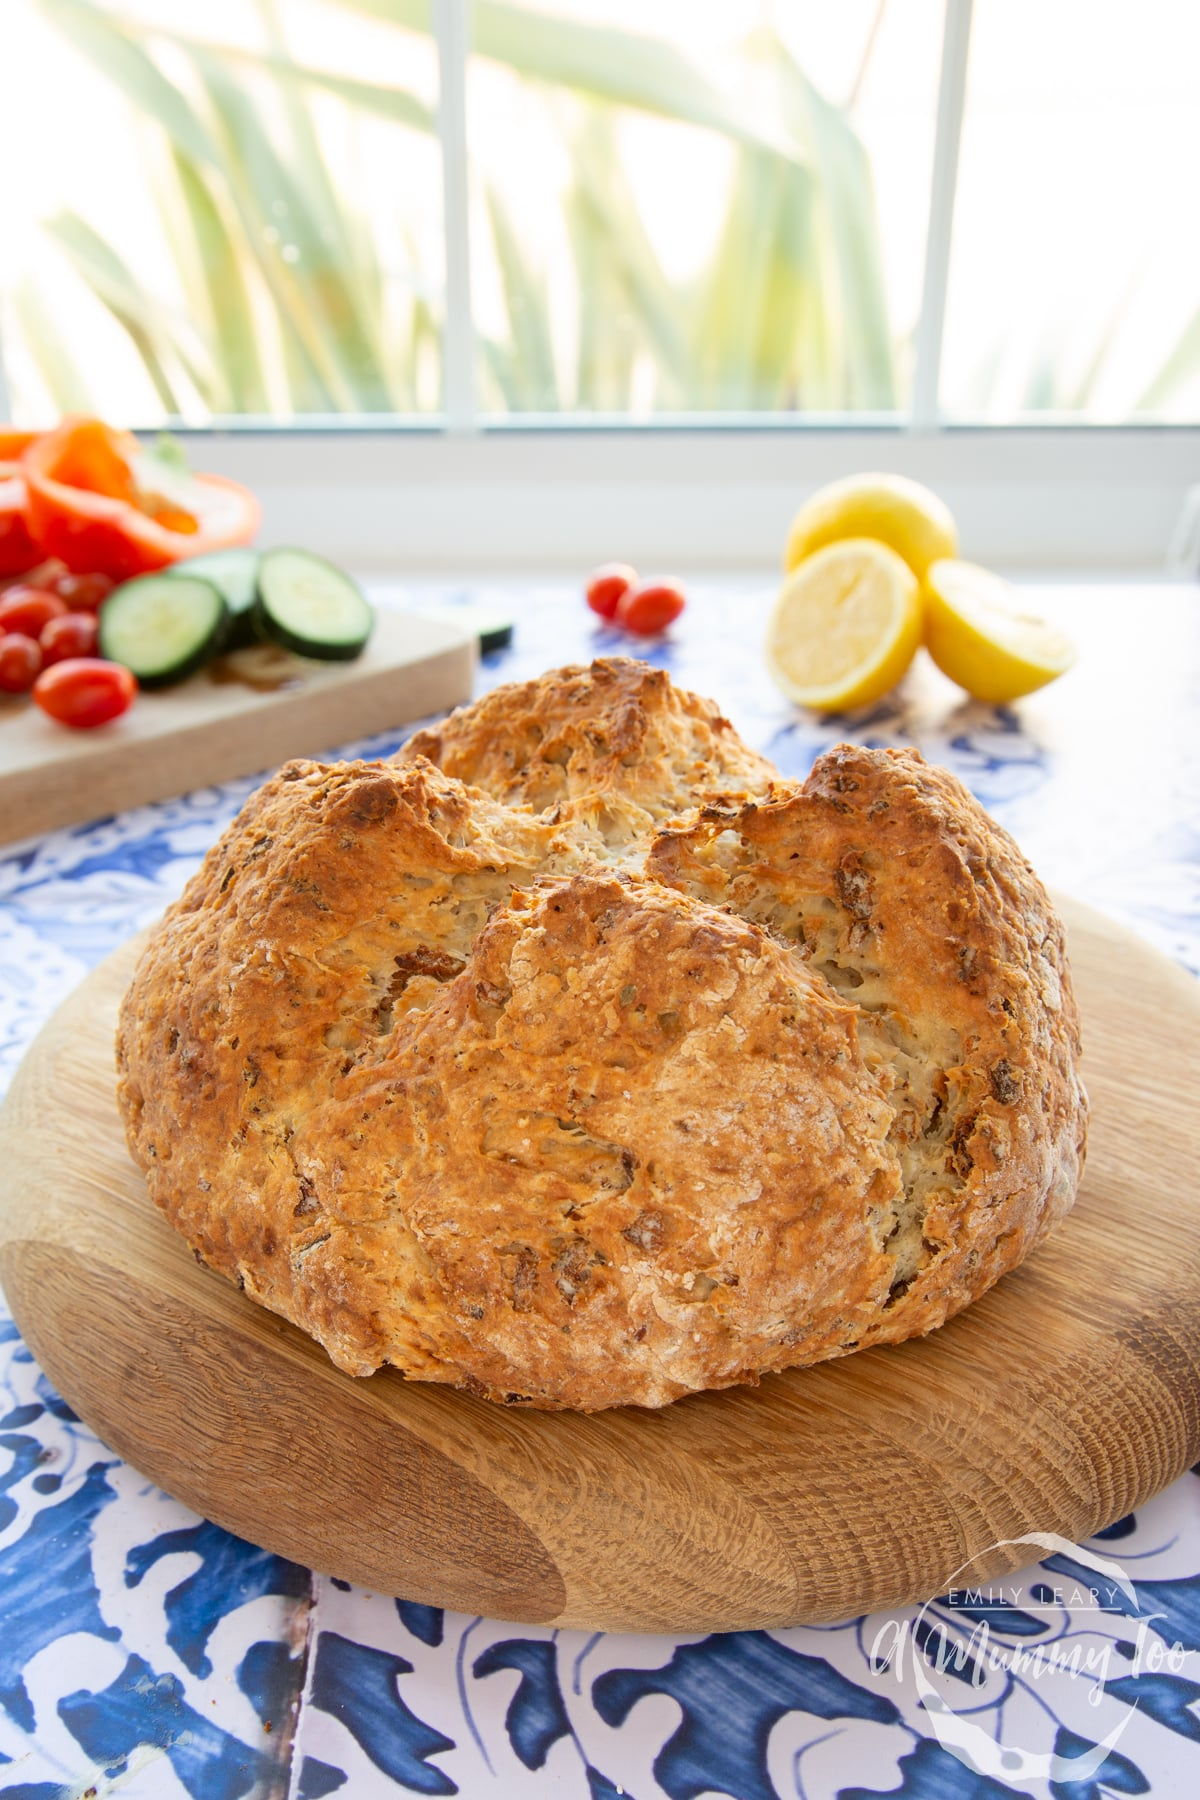 A loaf of onion soda bread on a wooden board.